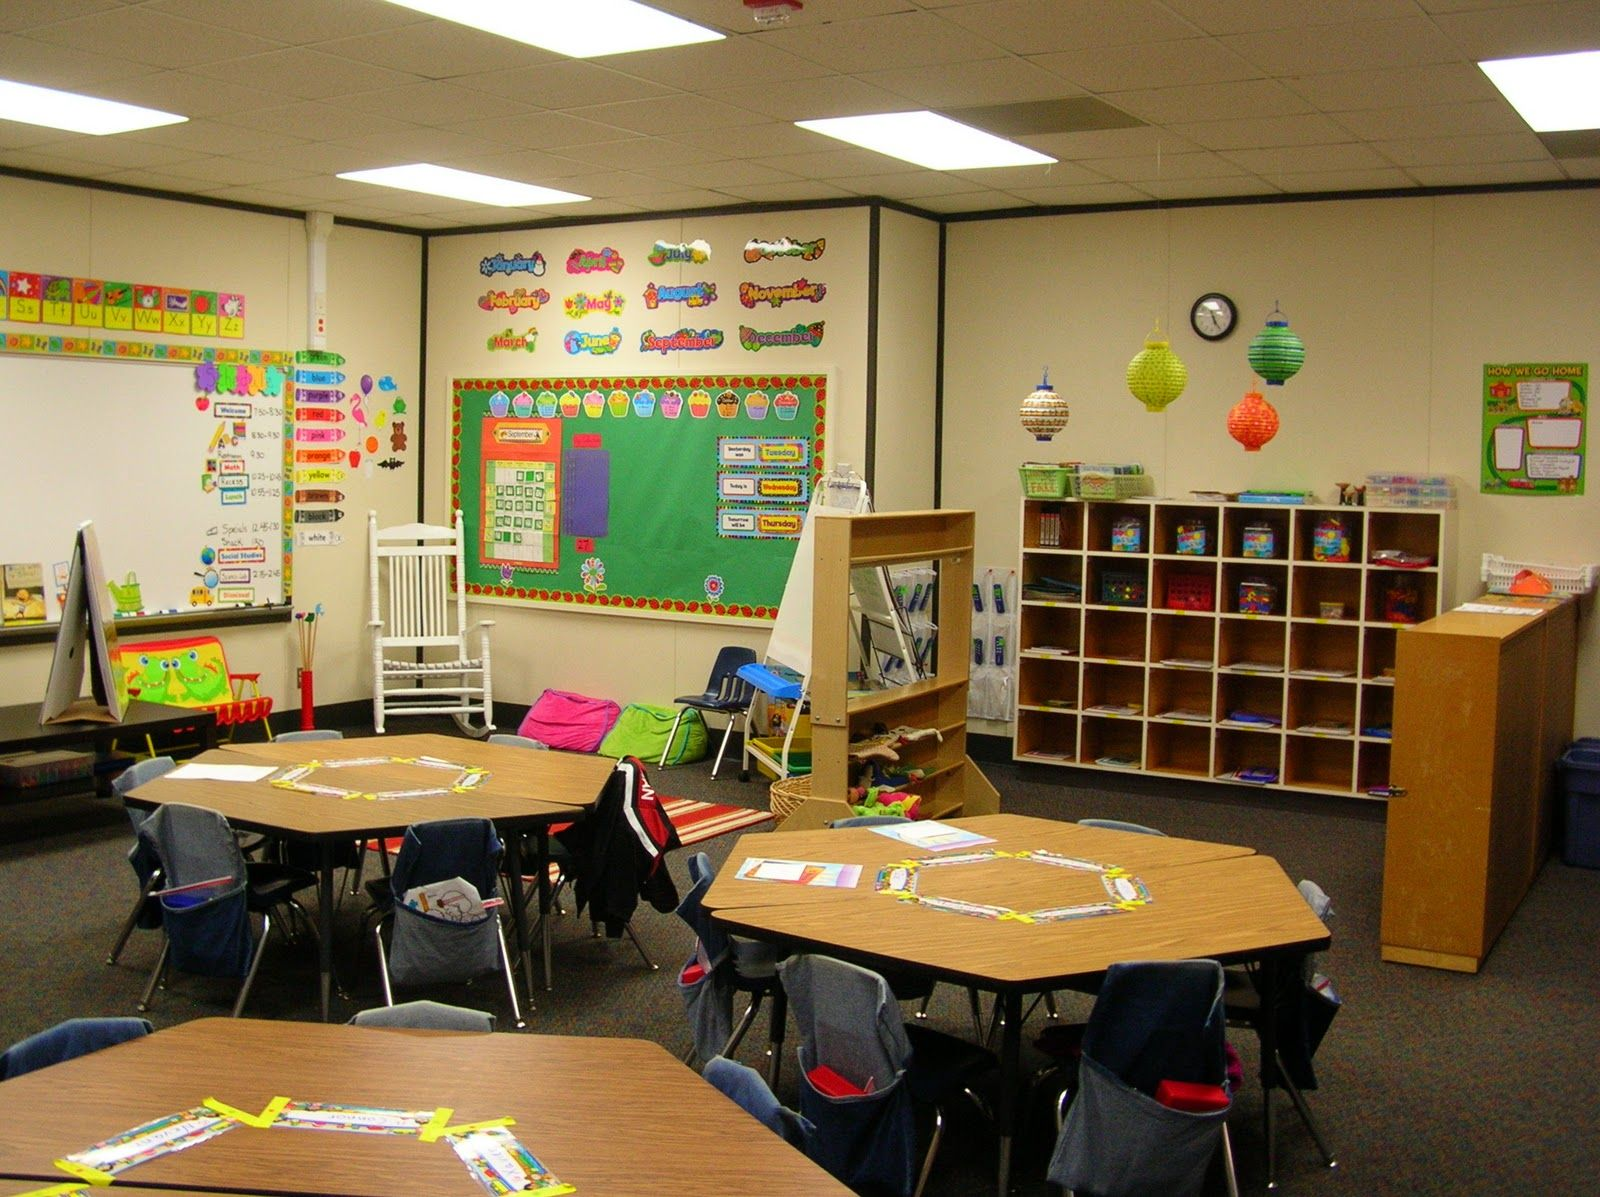 Centers Or Stations Classroom Design Definition : Centers for pre kindergarten classrooms the cutest